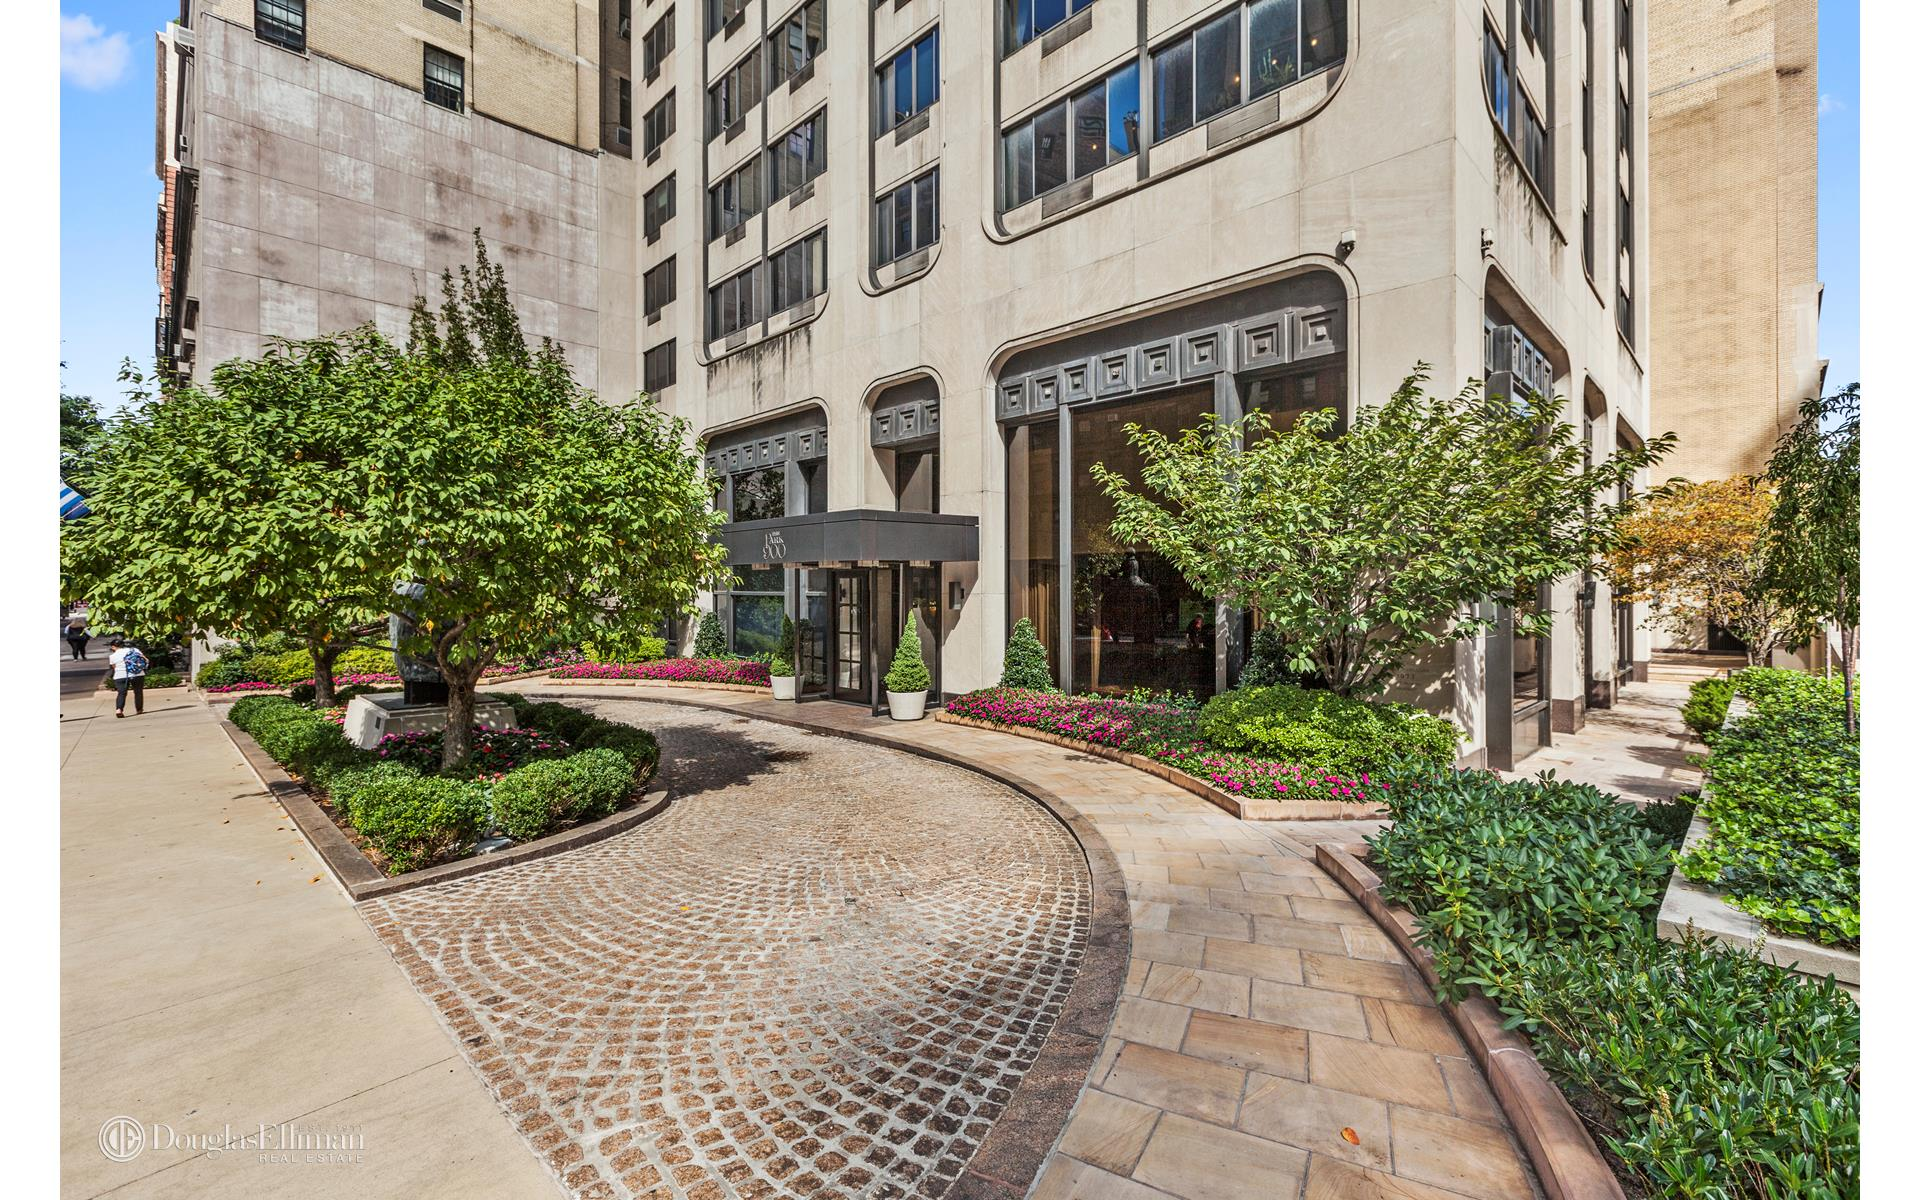 Upper east side 3 bedroom rental at 900 park ave new york for 11 east broadway 13th floor new york ny 10038